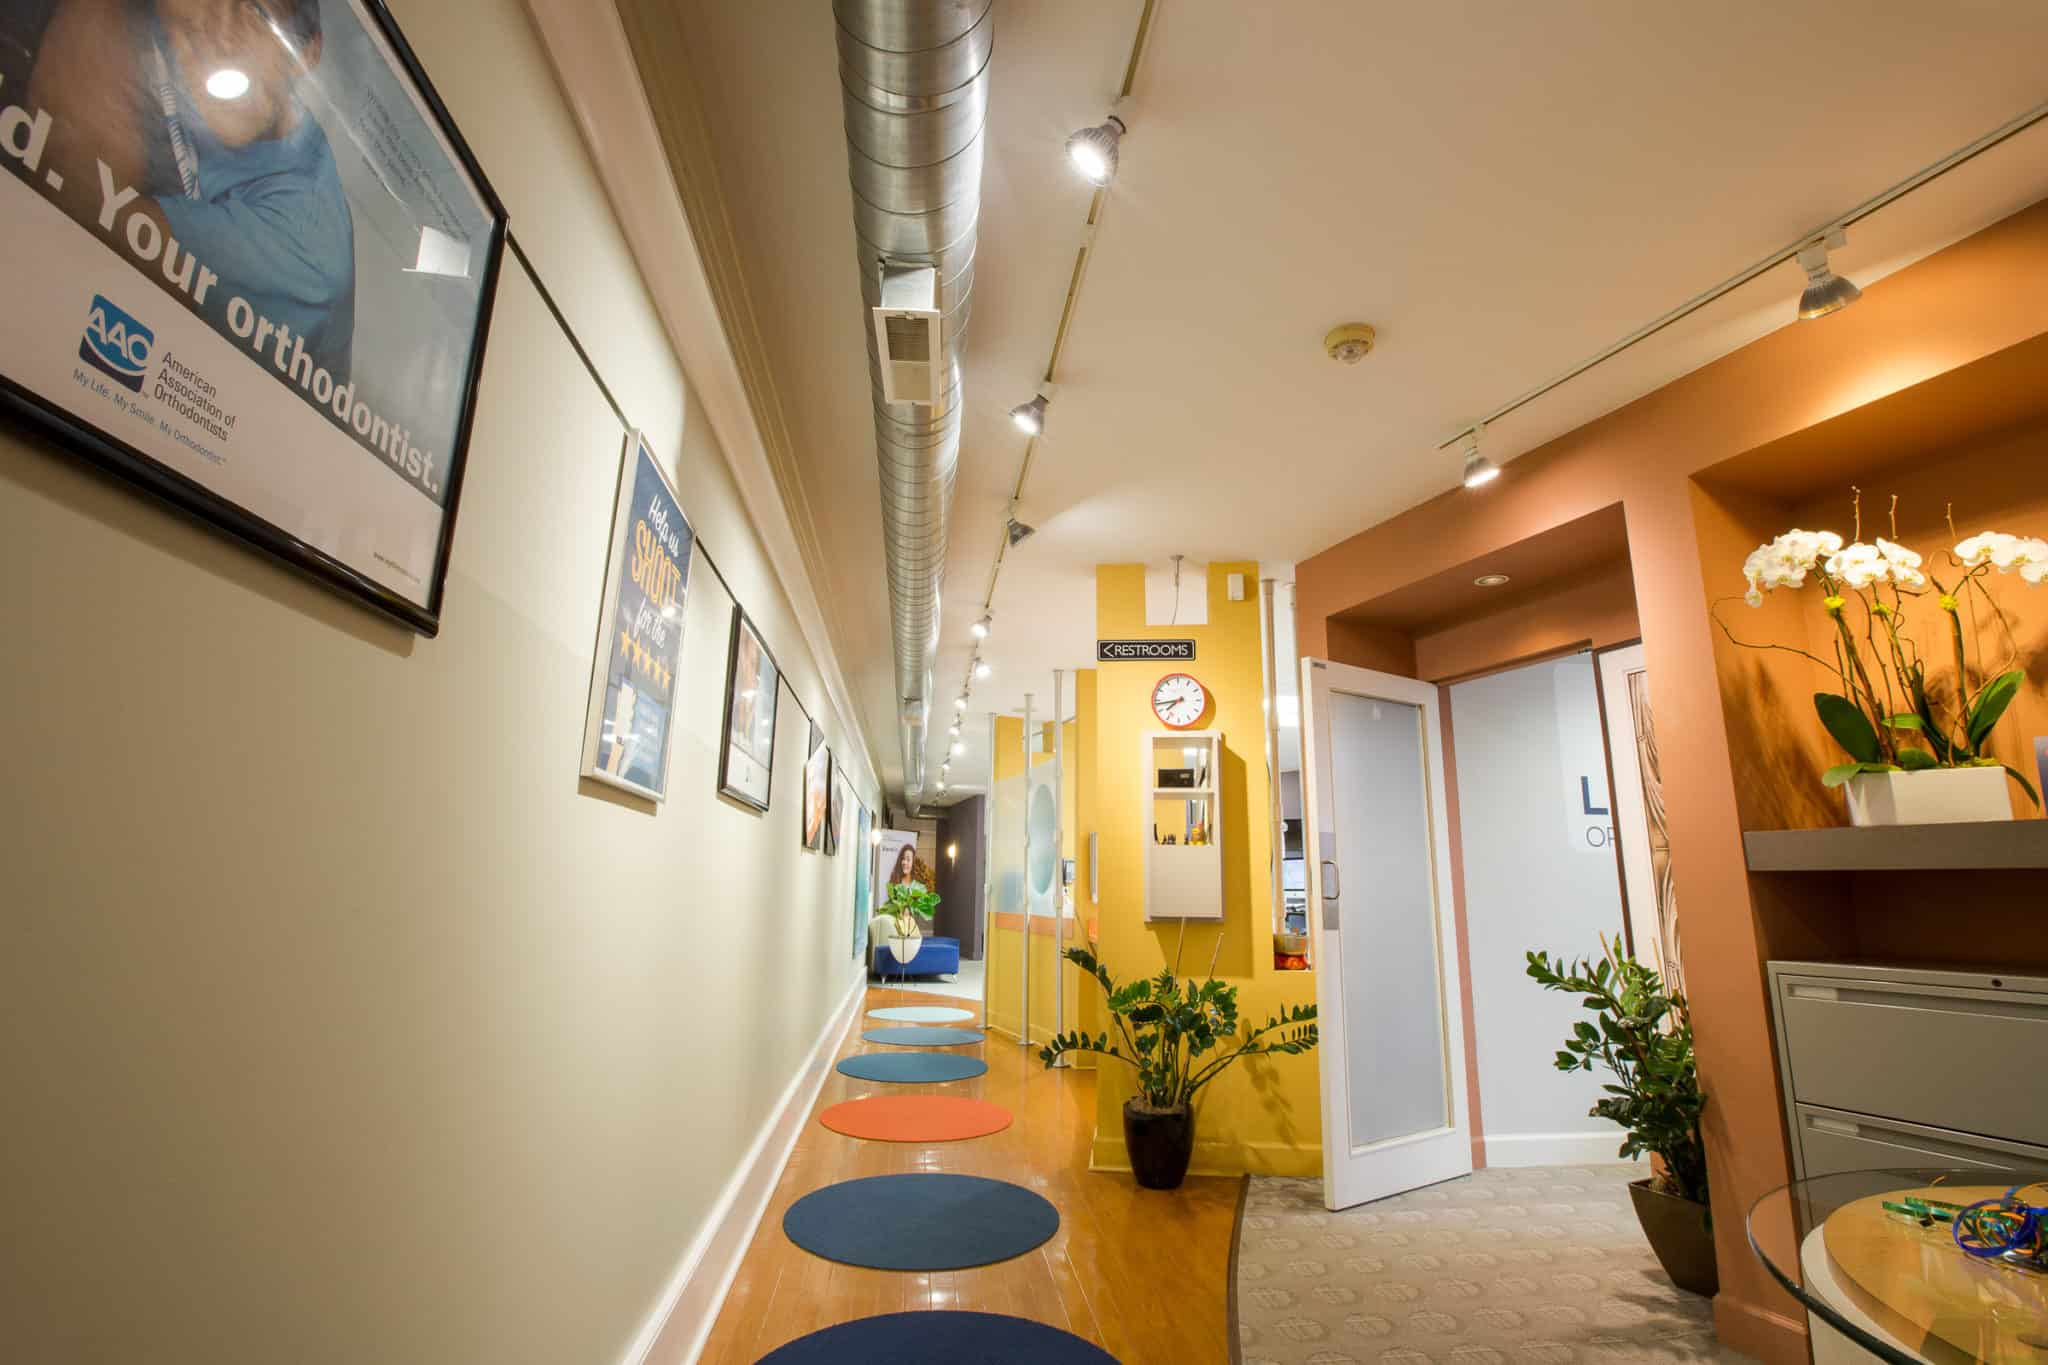 interior LarsonOrthodontics AlexandriaVA smilesbylarson.com6  2048x1365 - What To Expect At Your Next Appointment